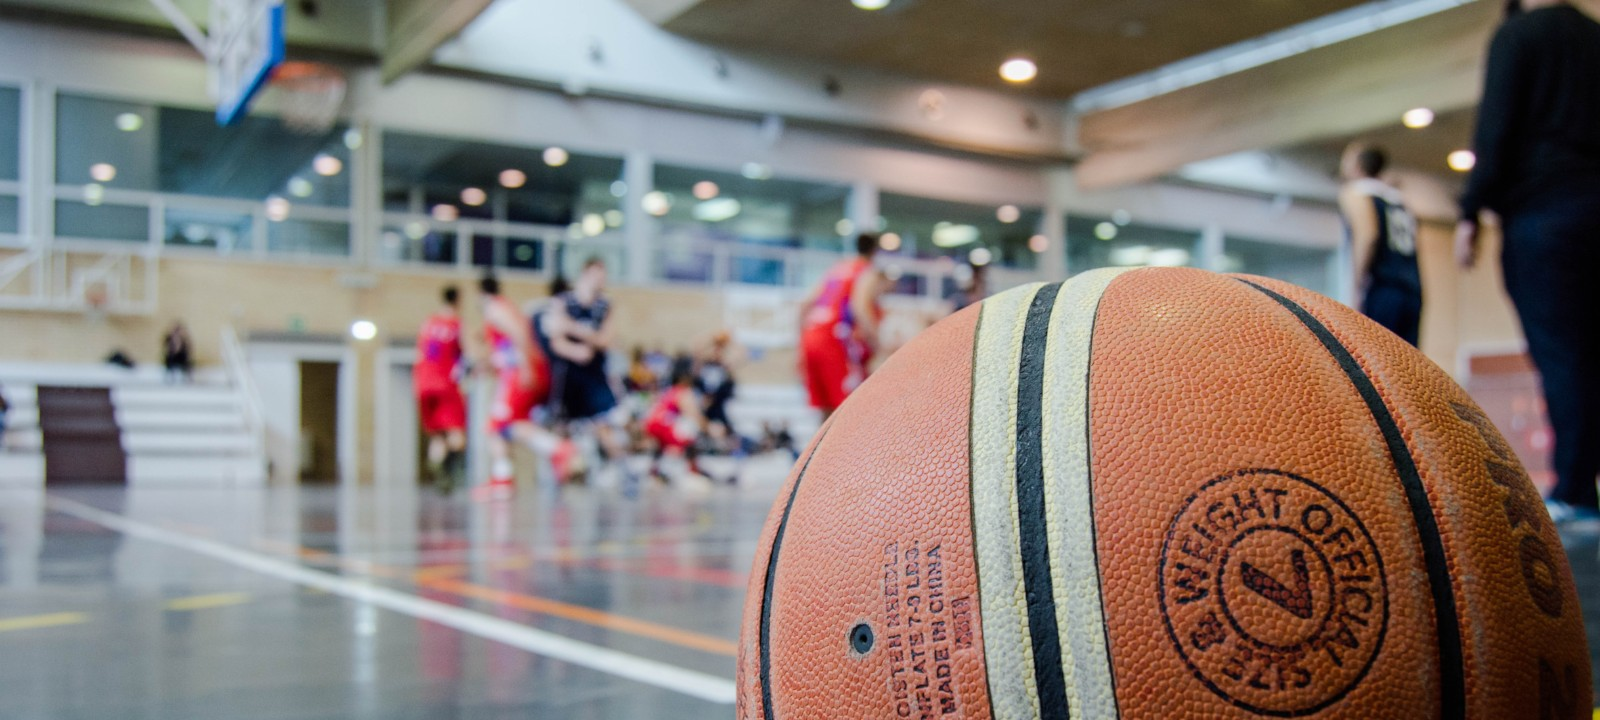 Basketball Schedules Now Available